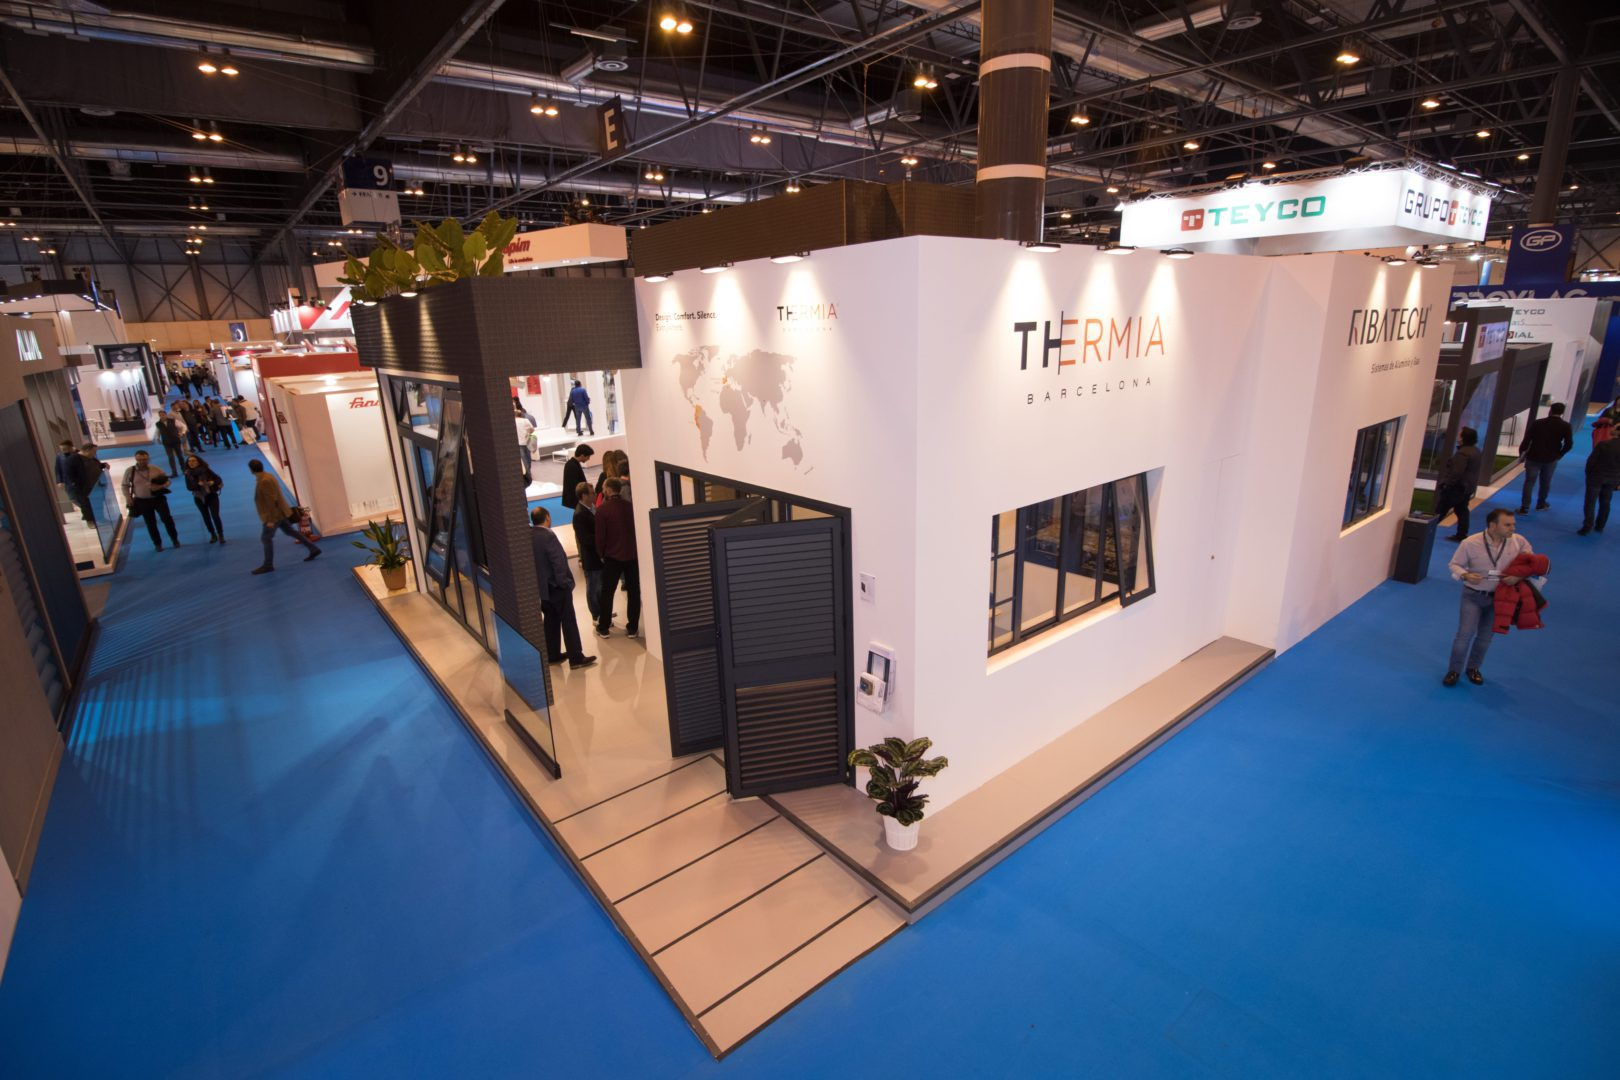 Design and construction of the THERMIA stand for VETECO 2018.